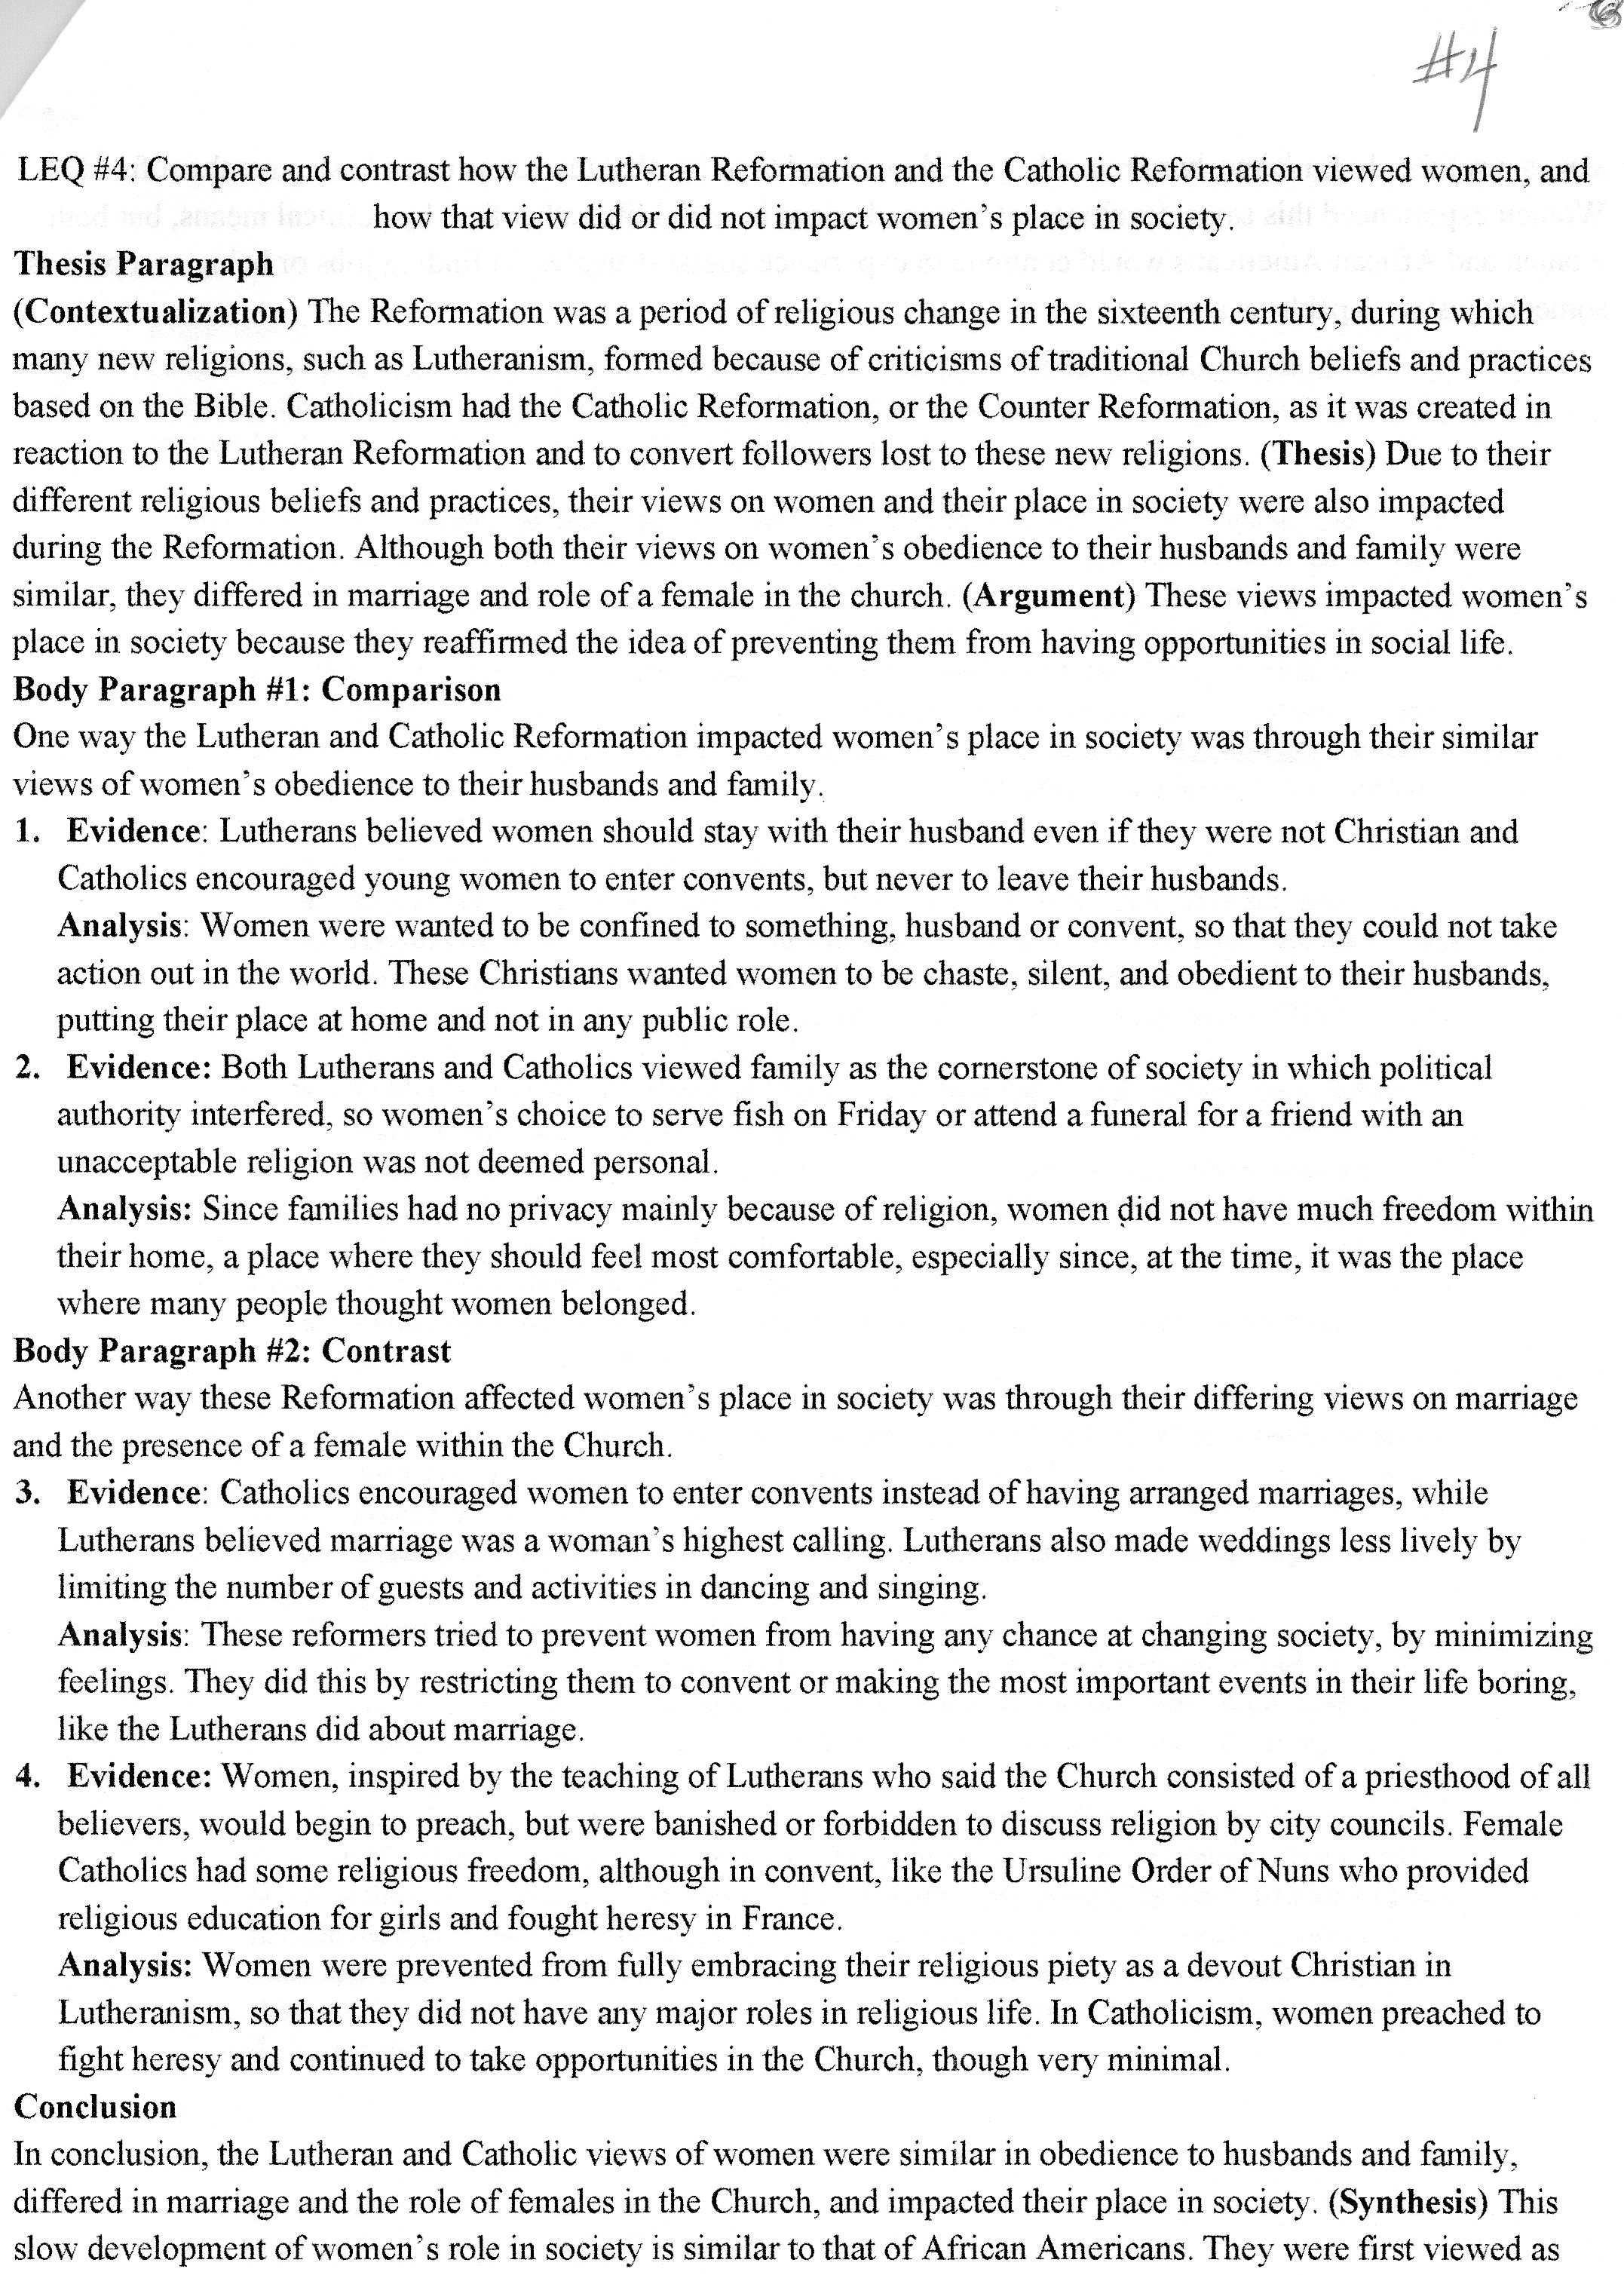 Unique Essays Ap European History Essay Prompts Pay To Write My Paper New Albert Io  Generic Ap Literature Essay Corporal Punishment also How To Make The World A Better Place Essay I Need Help Writing A Thesis Statement For This Short Story I Have  Langston Hughes Essays